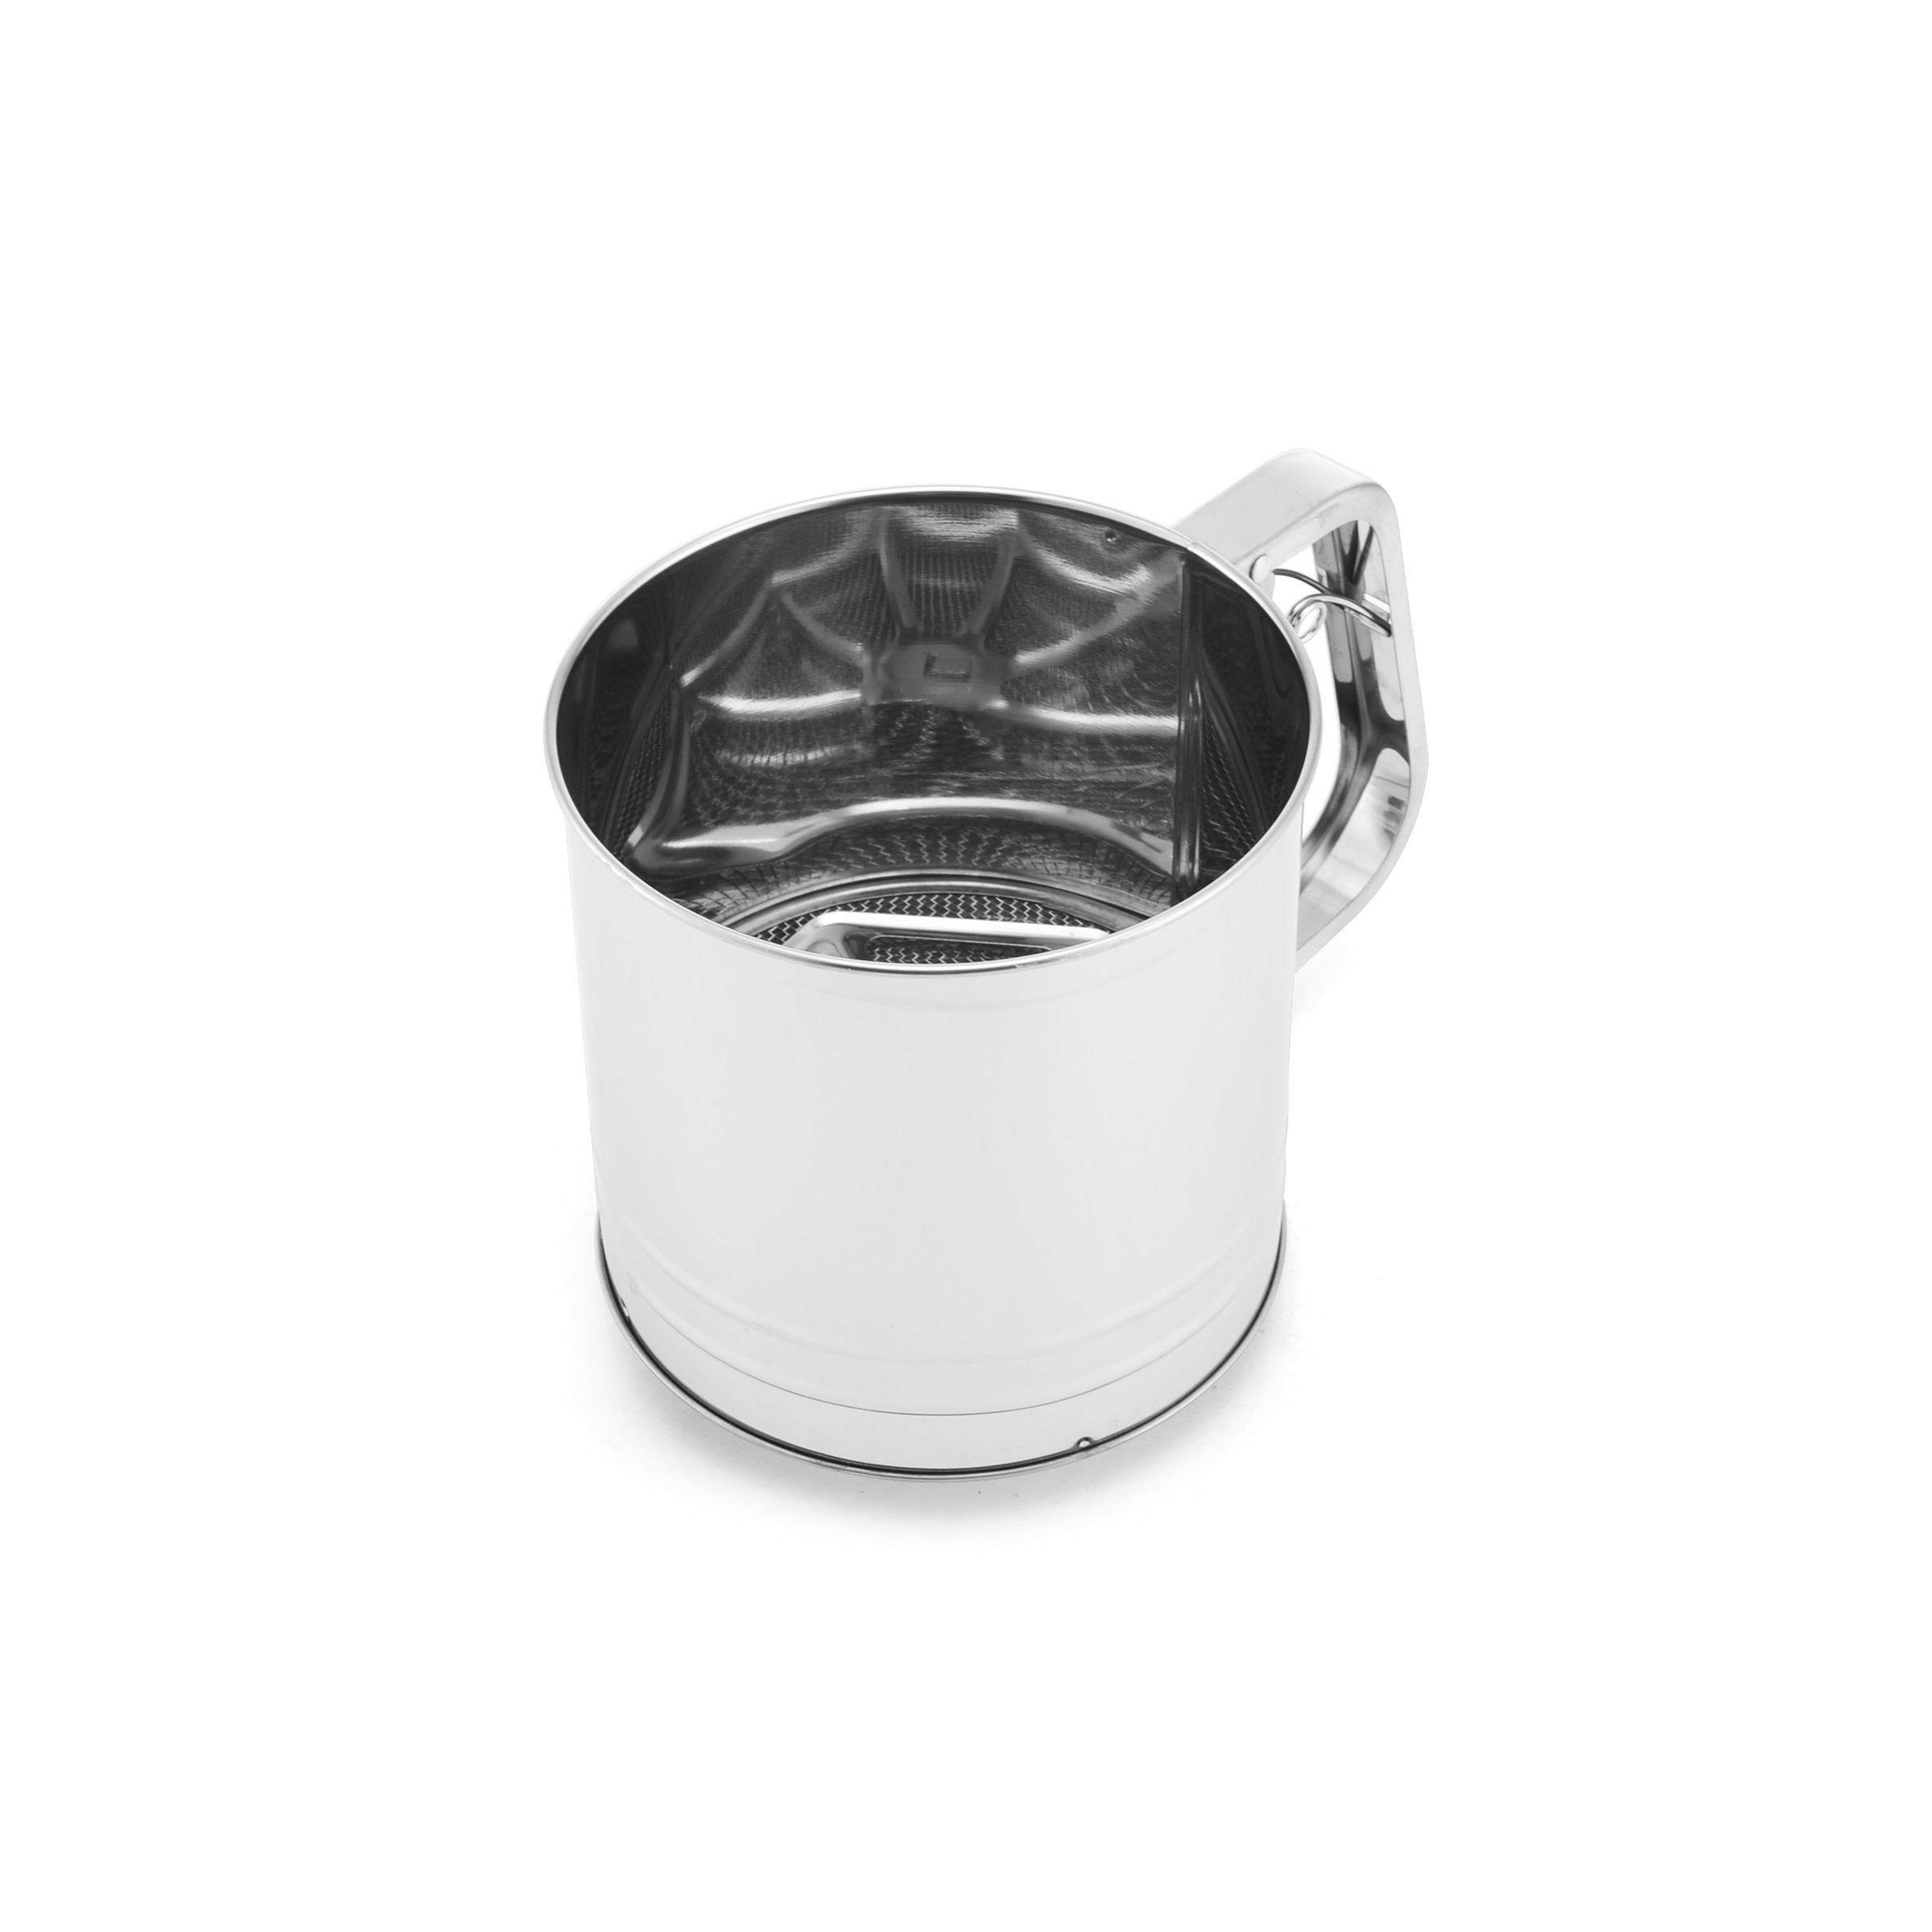 Farberware Classic 5-Cup Stainless Steel Flour Sifter by Lifetime Brands